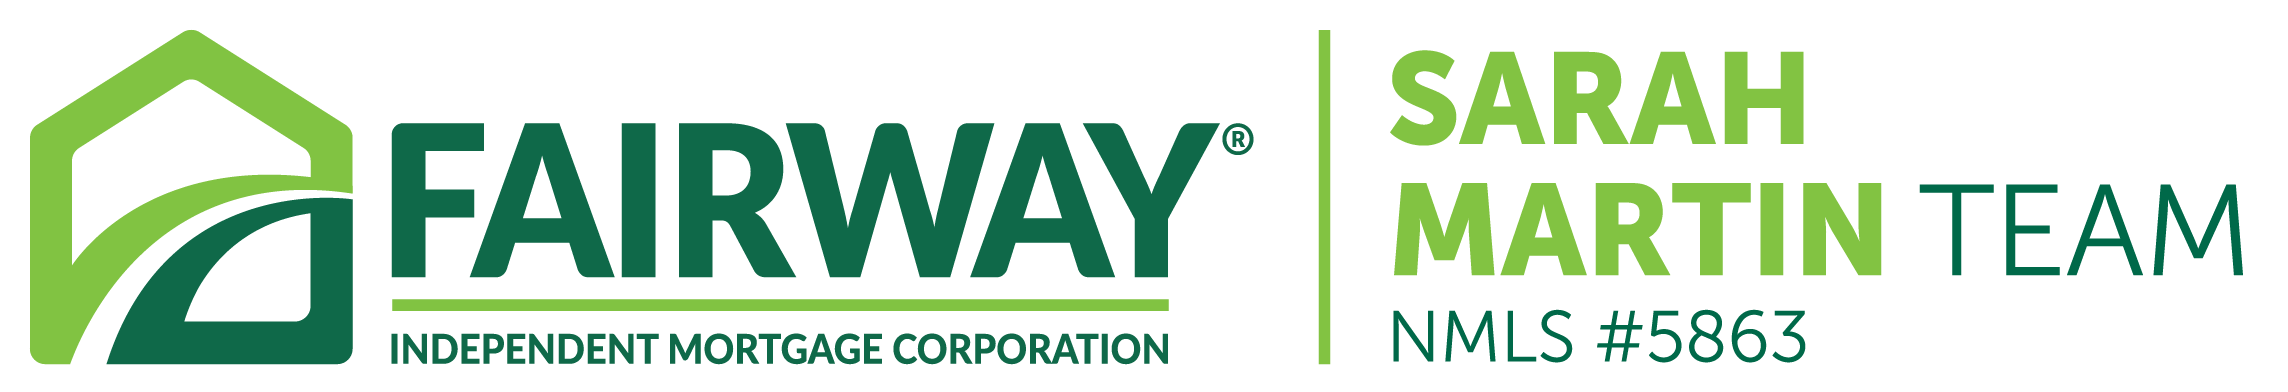 Sarah Martin | Fairway Independent Mortgage Corporation | Logo